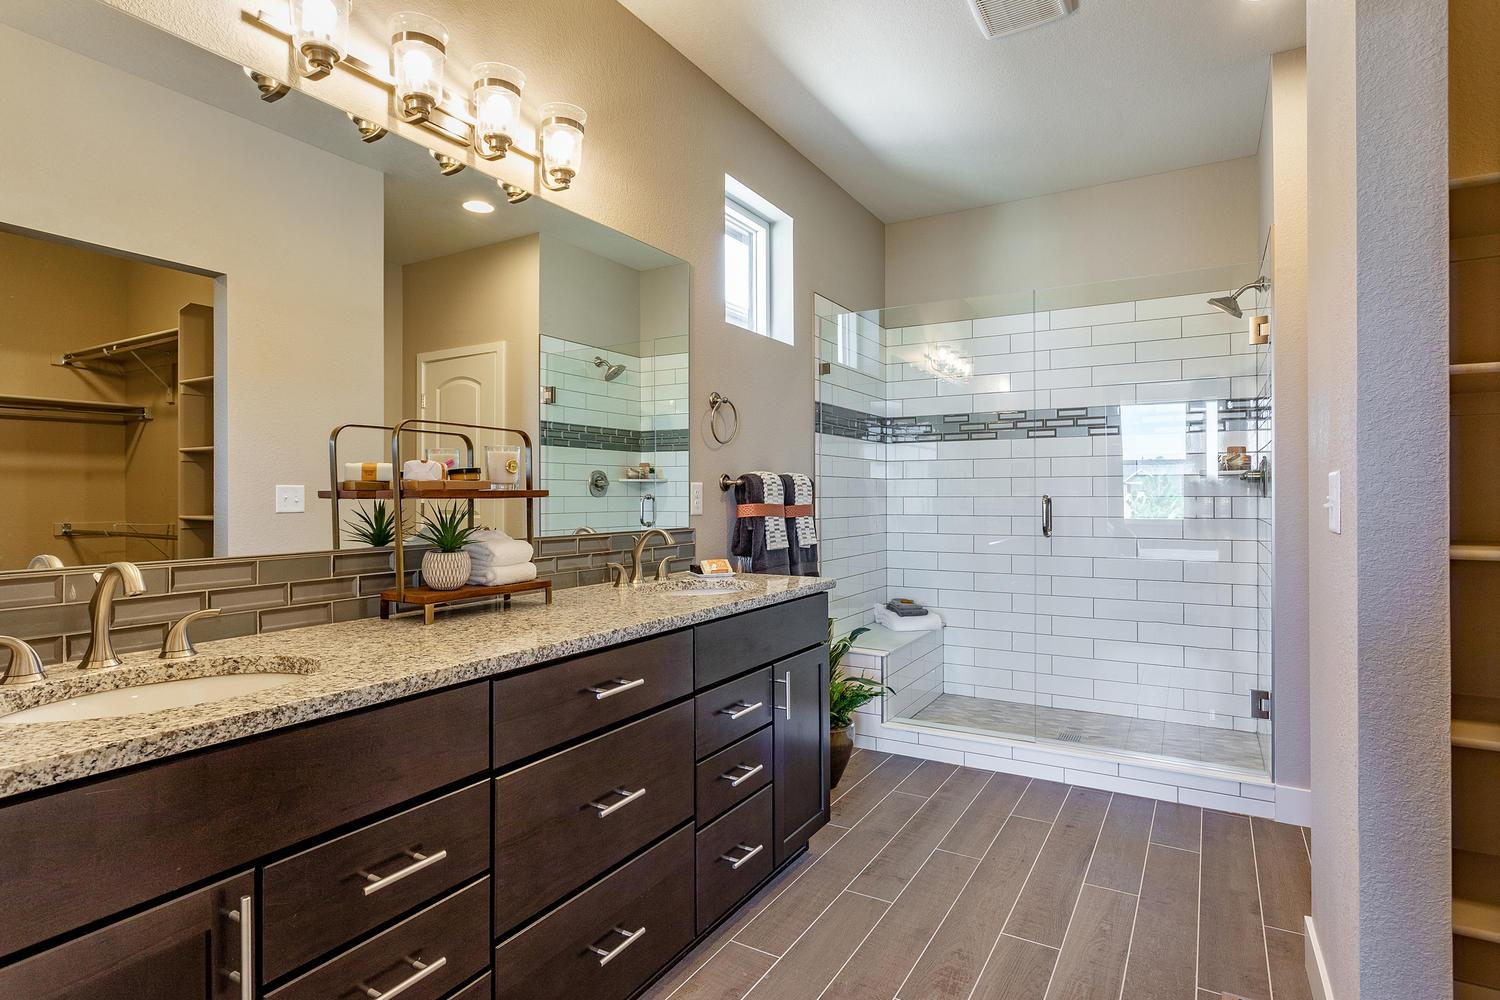 Bathroom featured in the Pateros Creek By Hartford Homes in Fort Collins-Loveland, CO